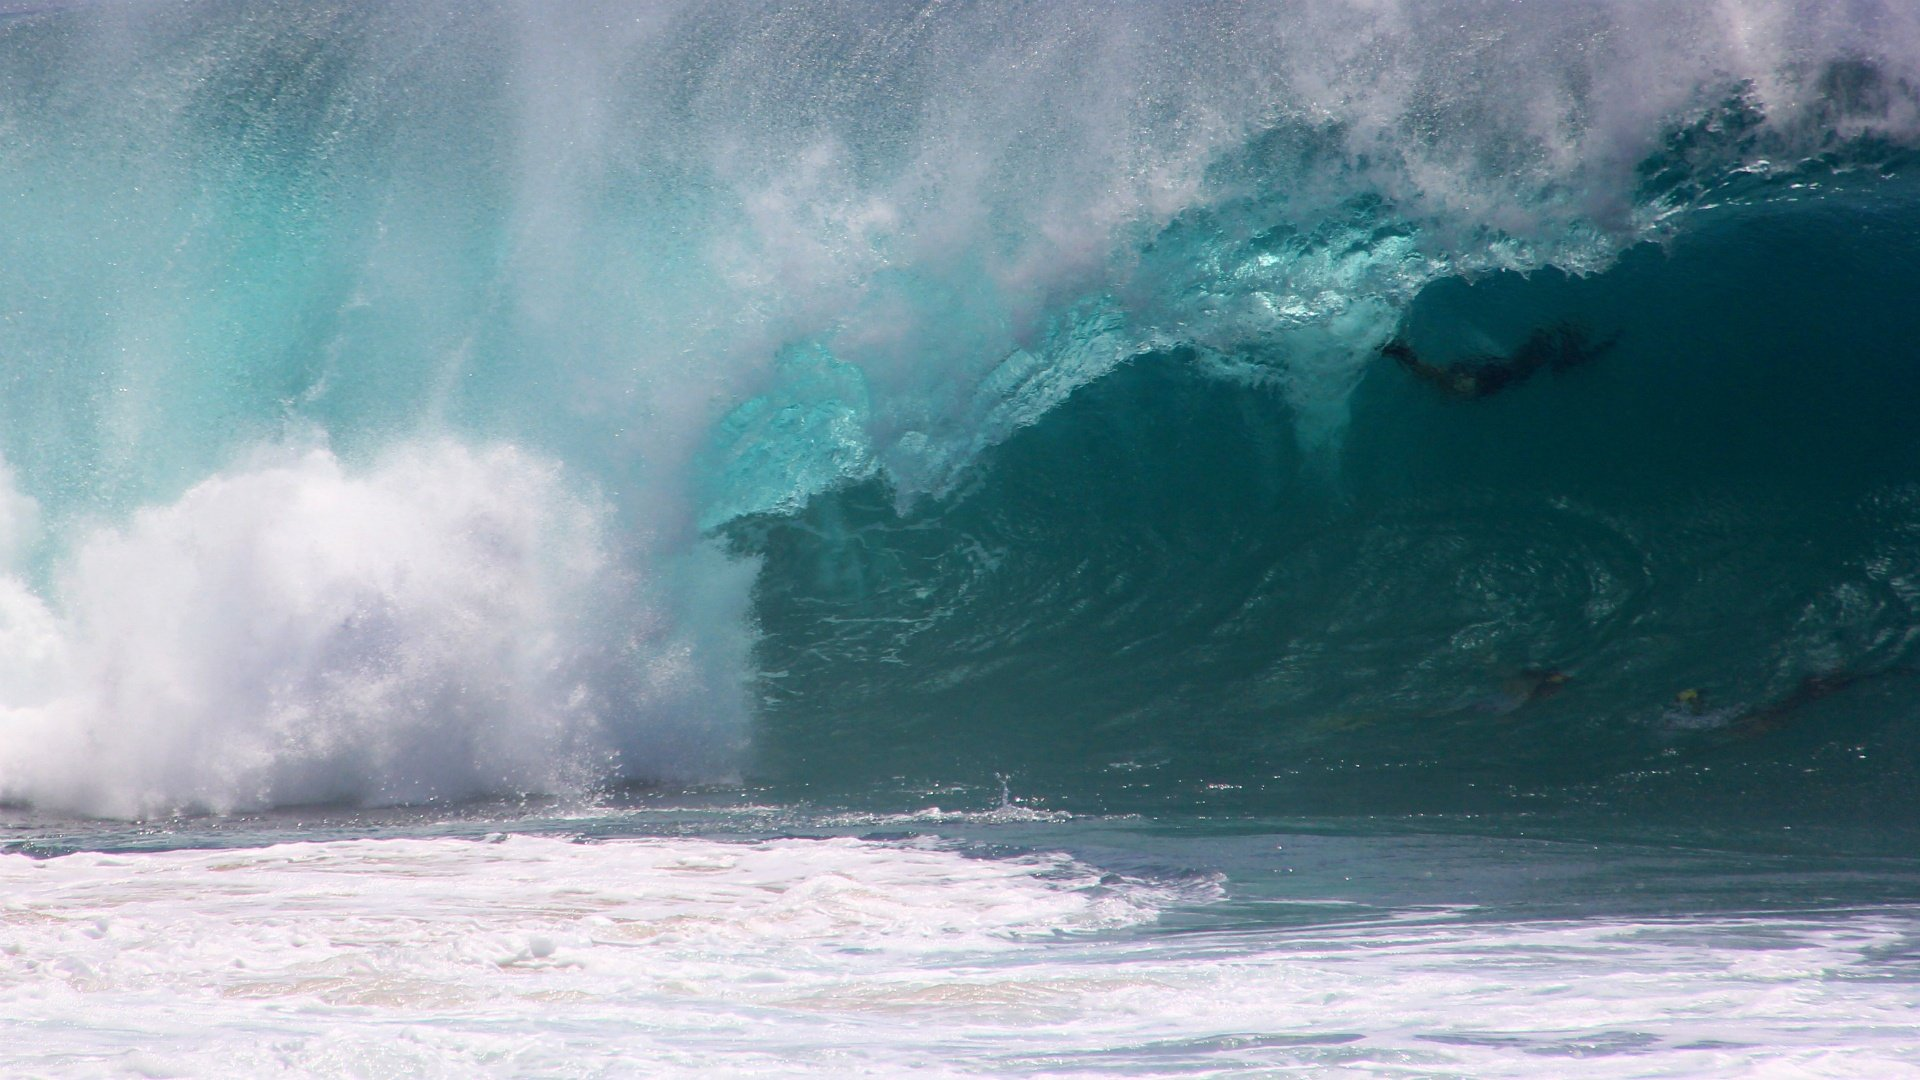 KenDrum Images's photo of The Wedge